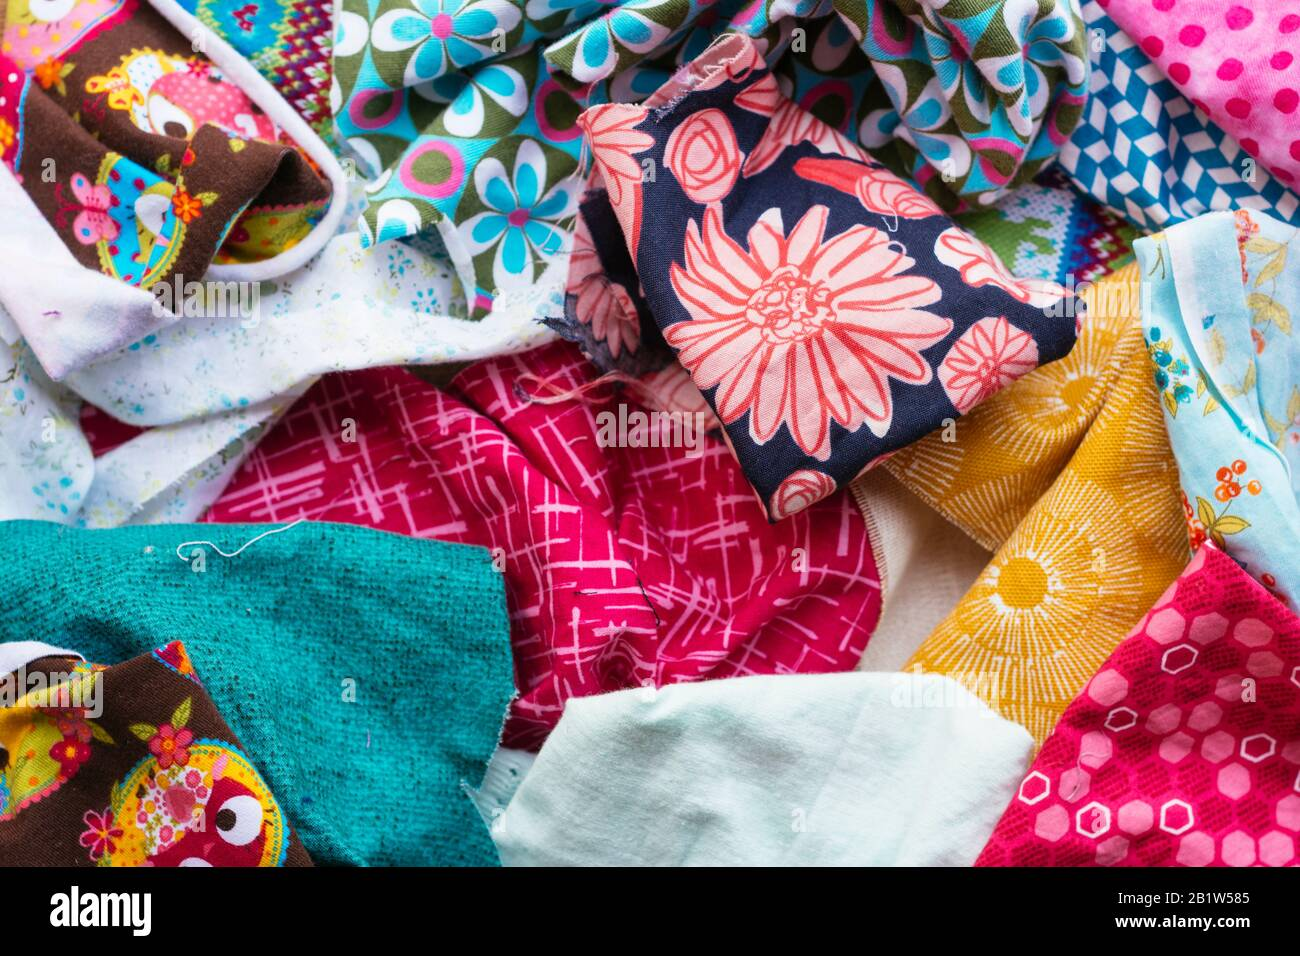 Collection Of Fabric Scraps Stock Photo Alamy